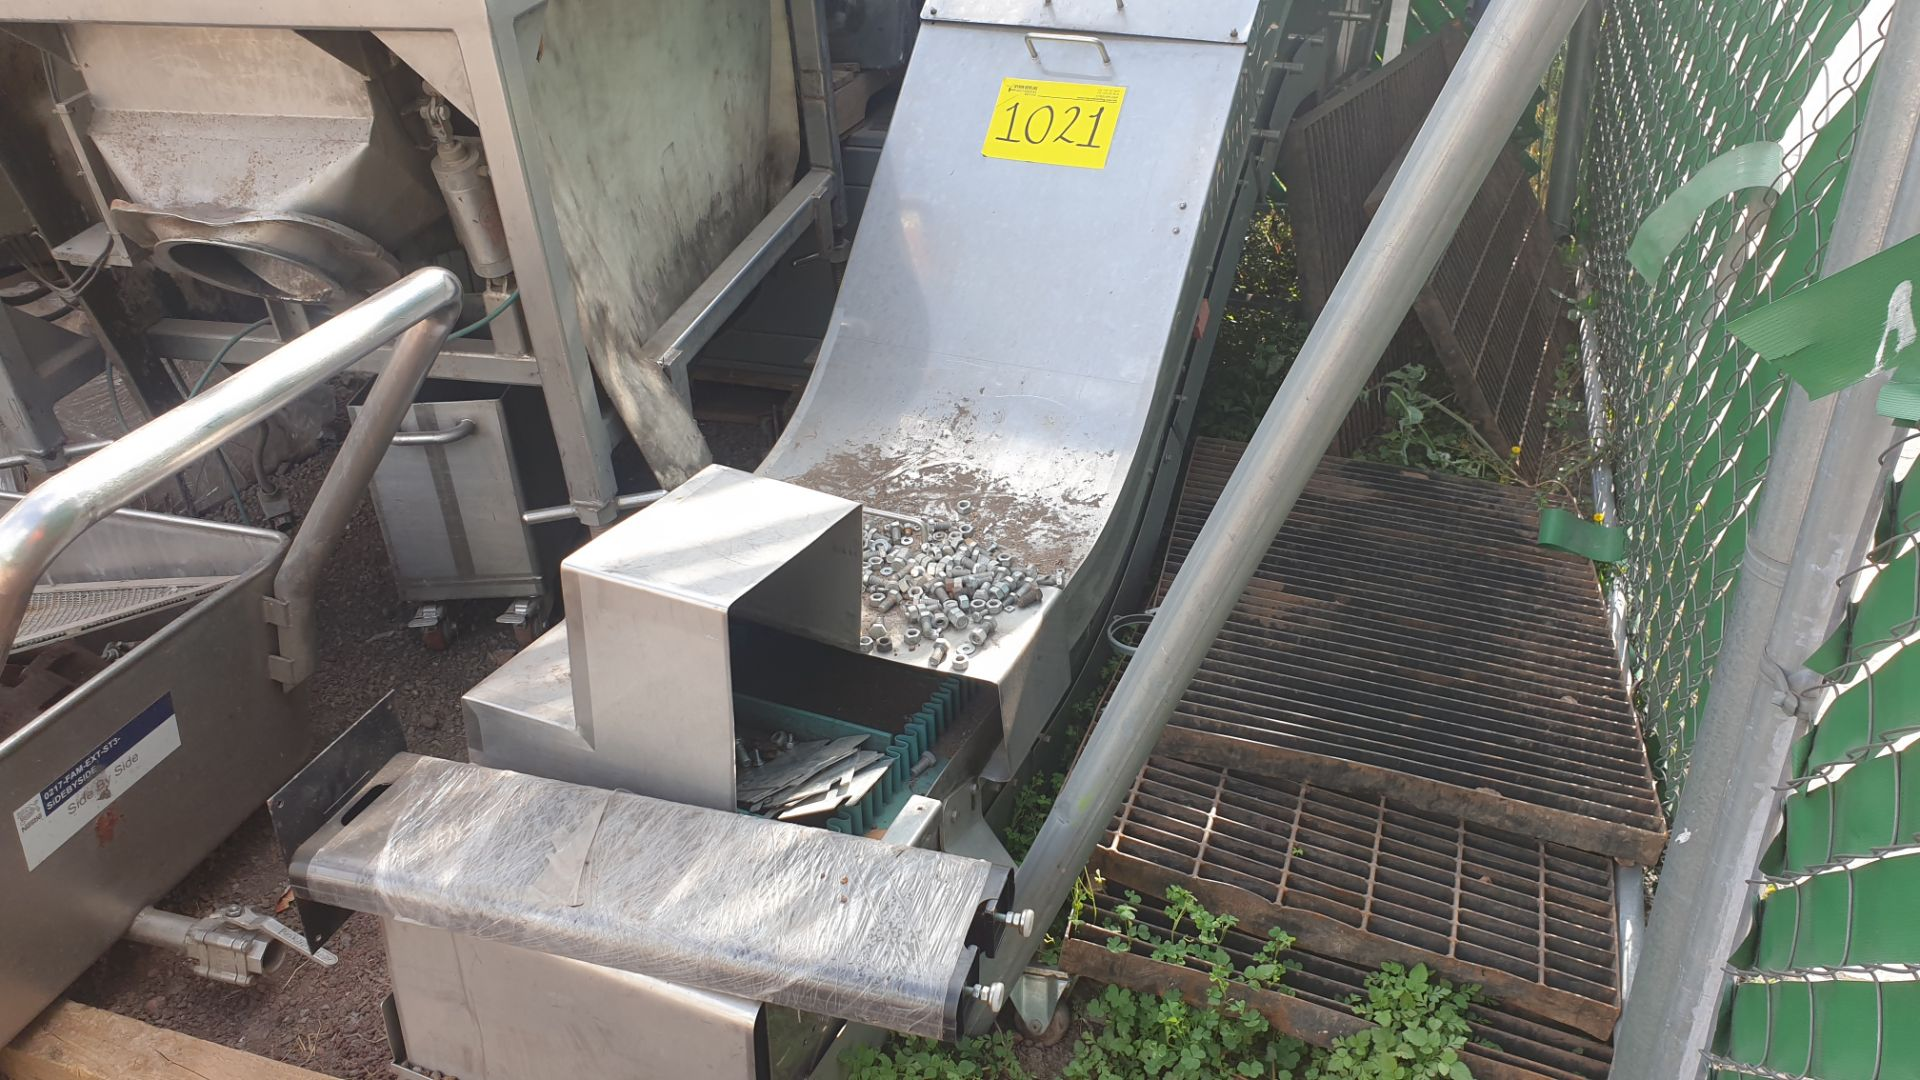 Collection of bands and heads system (product recovery for reprocessing) - Image 6 of 12